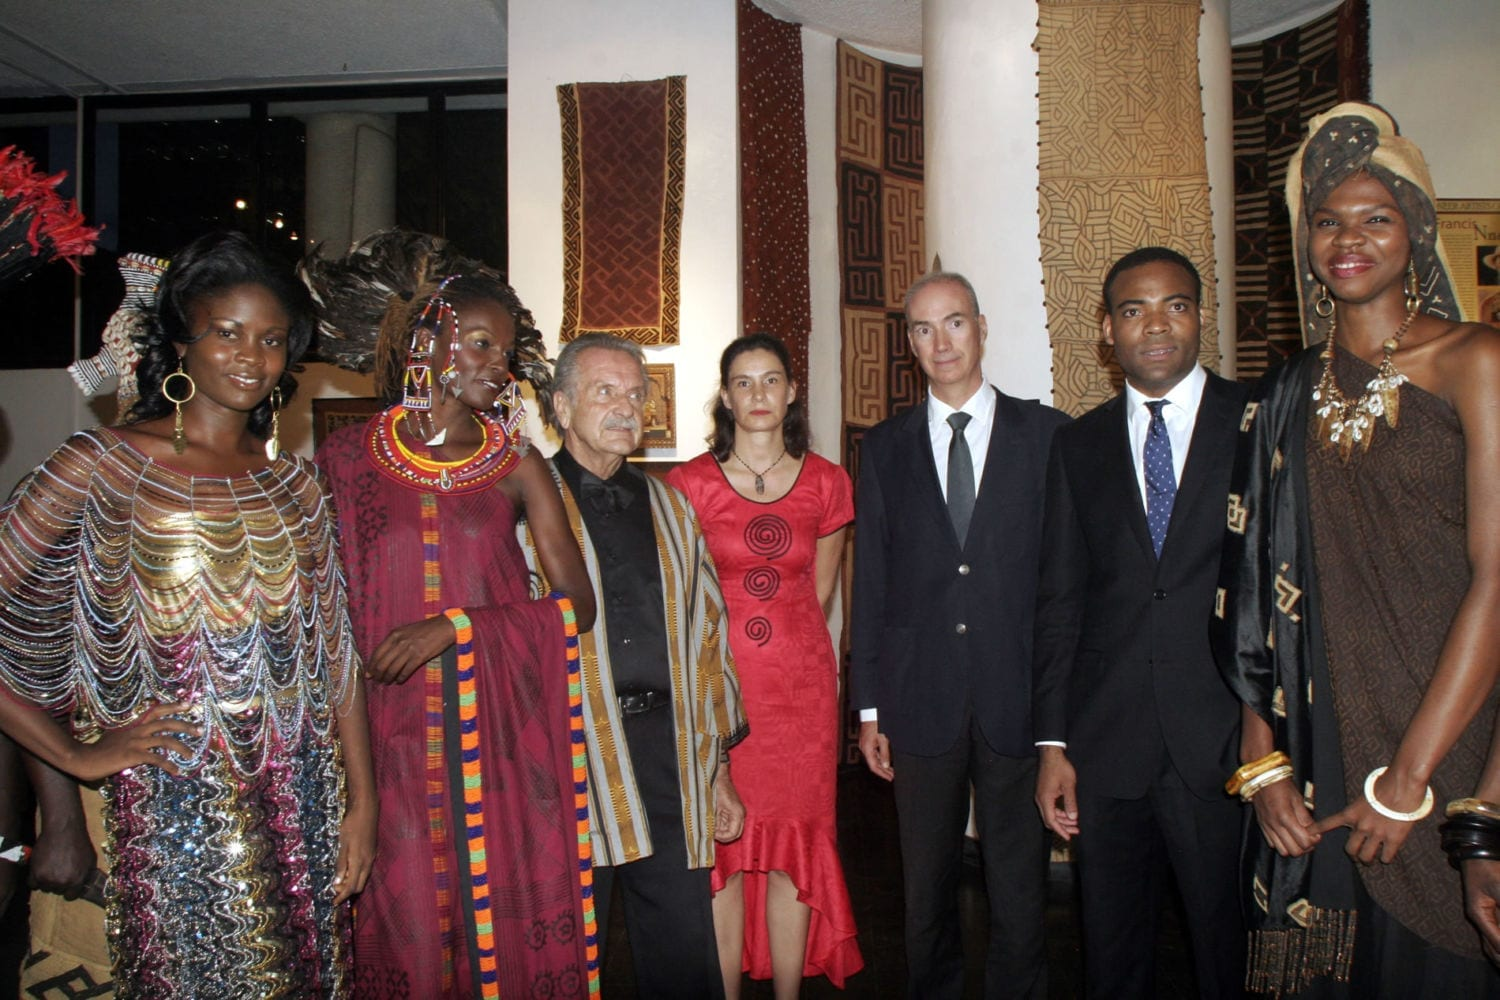 Alan Donovan (third left) with the Guest of Honour for the African Heritage 40th Anniversary Celebrations, Prince Kwete Kwete of the Kingdom of Kuba (DRC), second from right, with French Ambassador to Kenya, Director of French Cultural Centre, and models in original African Heritage designs of authentic African textiles by Alan Donovan.